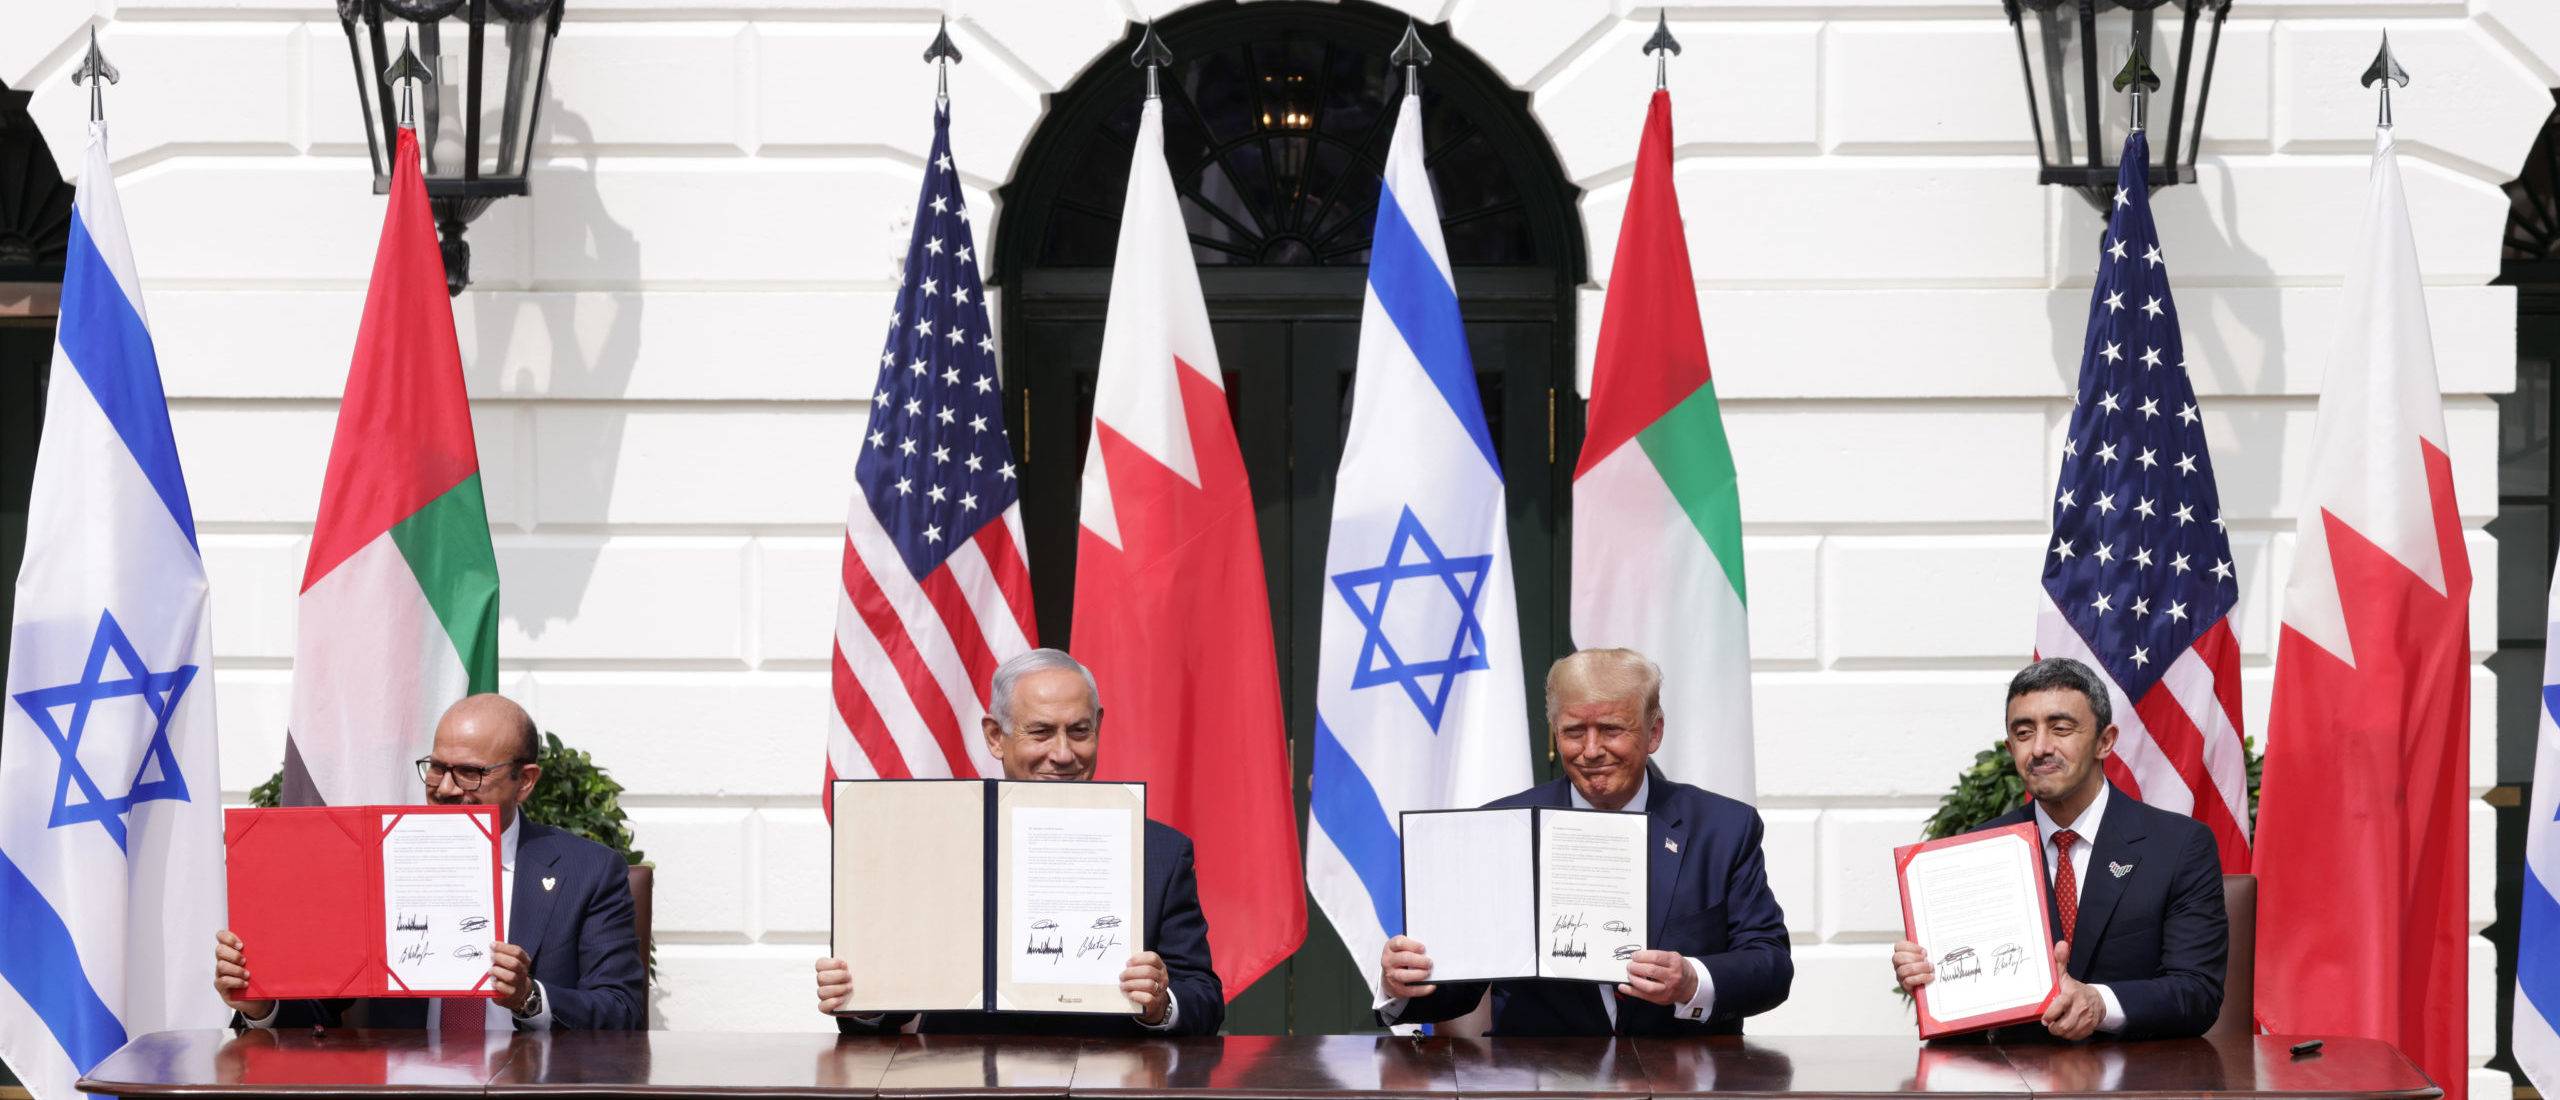 WASHINGTON, DC - SEPTEMBER 15: (L-R) Foreign Affairs Minister of Bahrain Abdullatif bin Rashid Al Zayani, Prime Minister of Israel Benjamin Netanyahu, U.S. President Donald Trump, and Foreign Affairs Minister of the United Arab Emirates Abdullah bin Zayed bin Sultan Al Nahyan participate in the signing ceremony of the Abraham Accords on the South Lawn of the White House (Photo by Alex Wong/Getty Images)